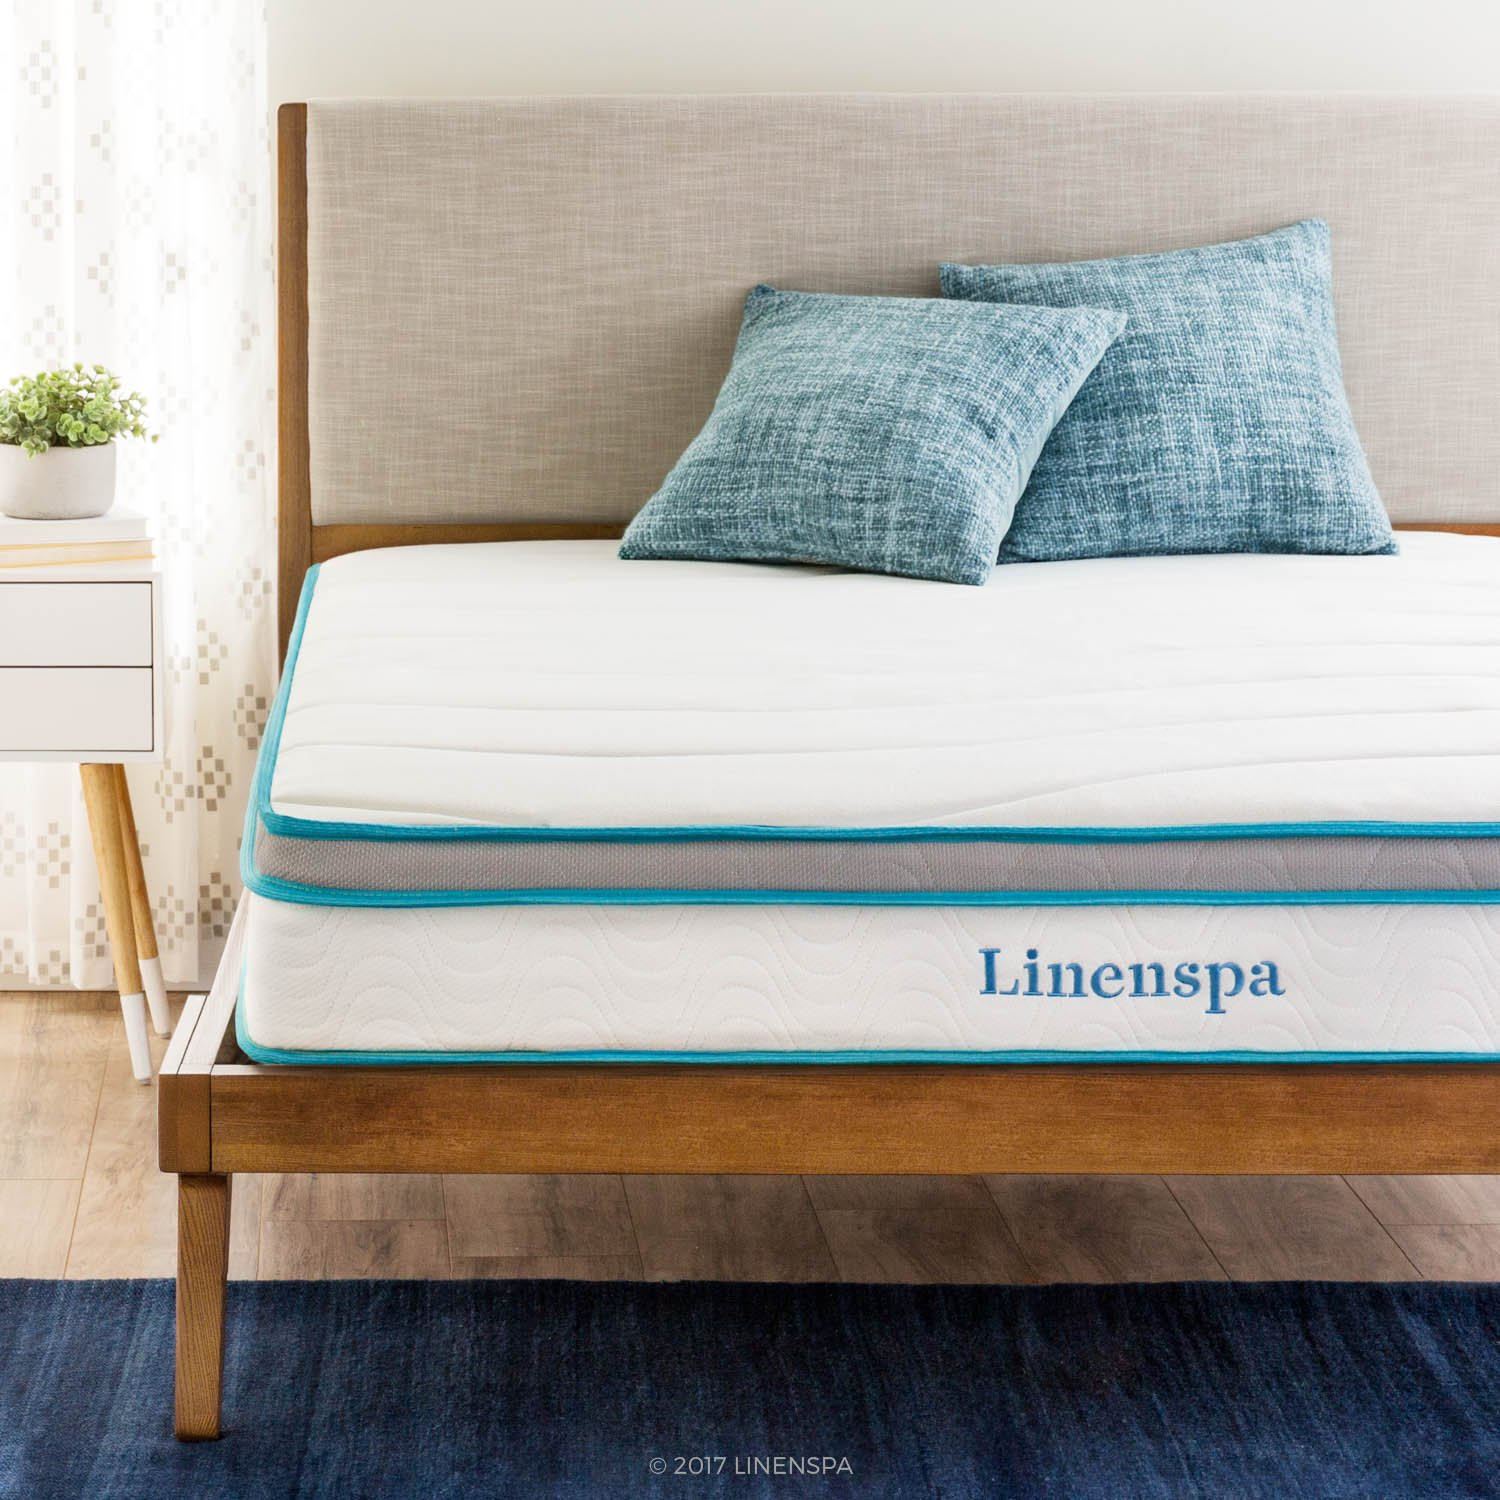 Linenspa 8 Inch Memory Foam and Innerspring Hybrid Mattress - Medium-Firm Feel - Twin XL